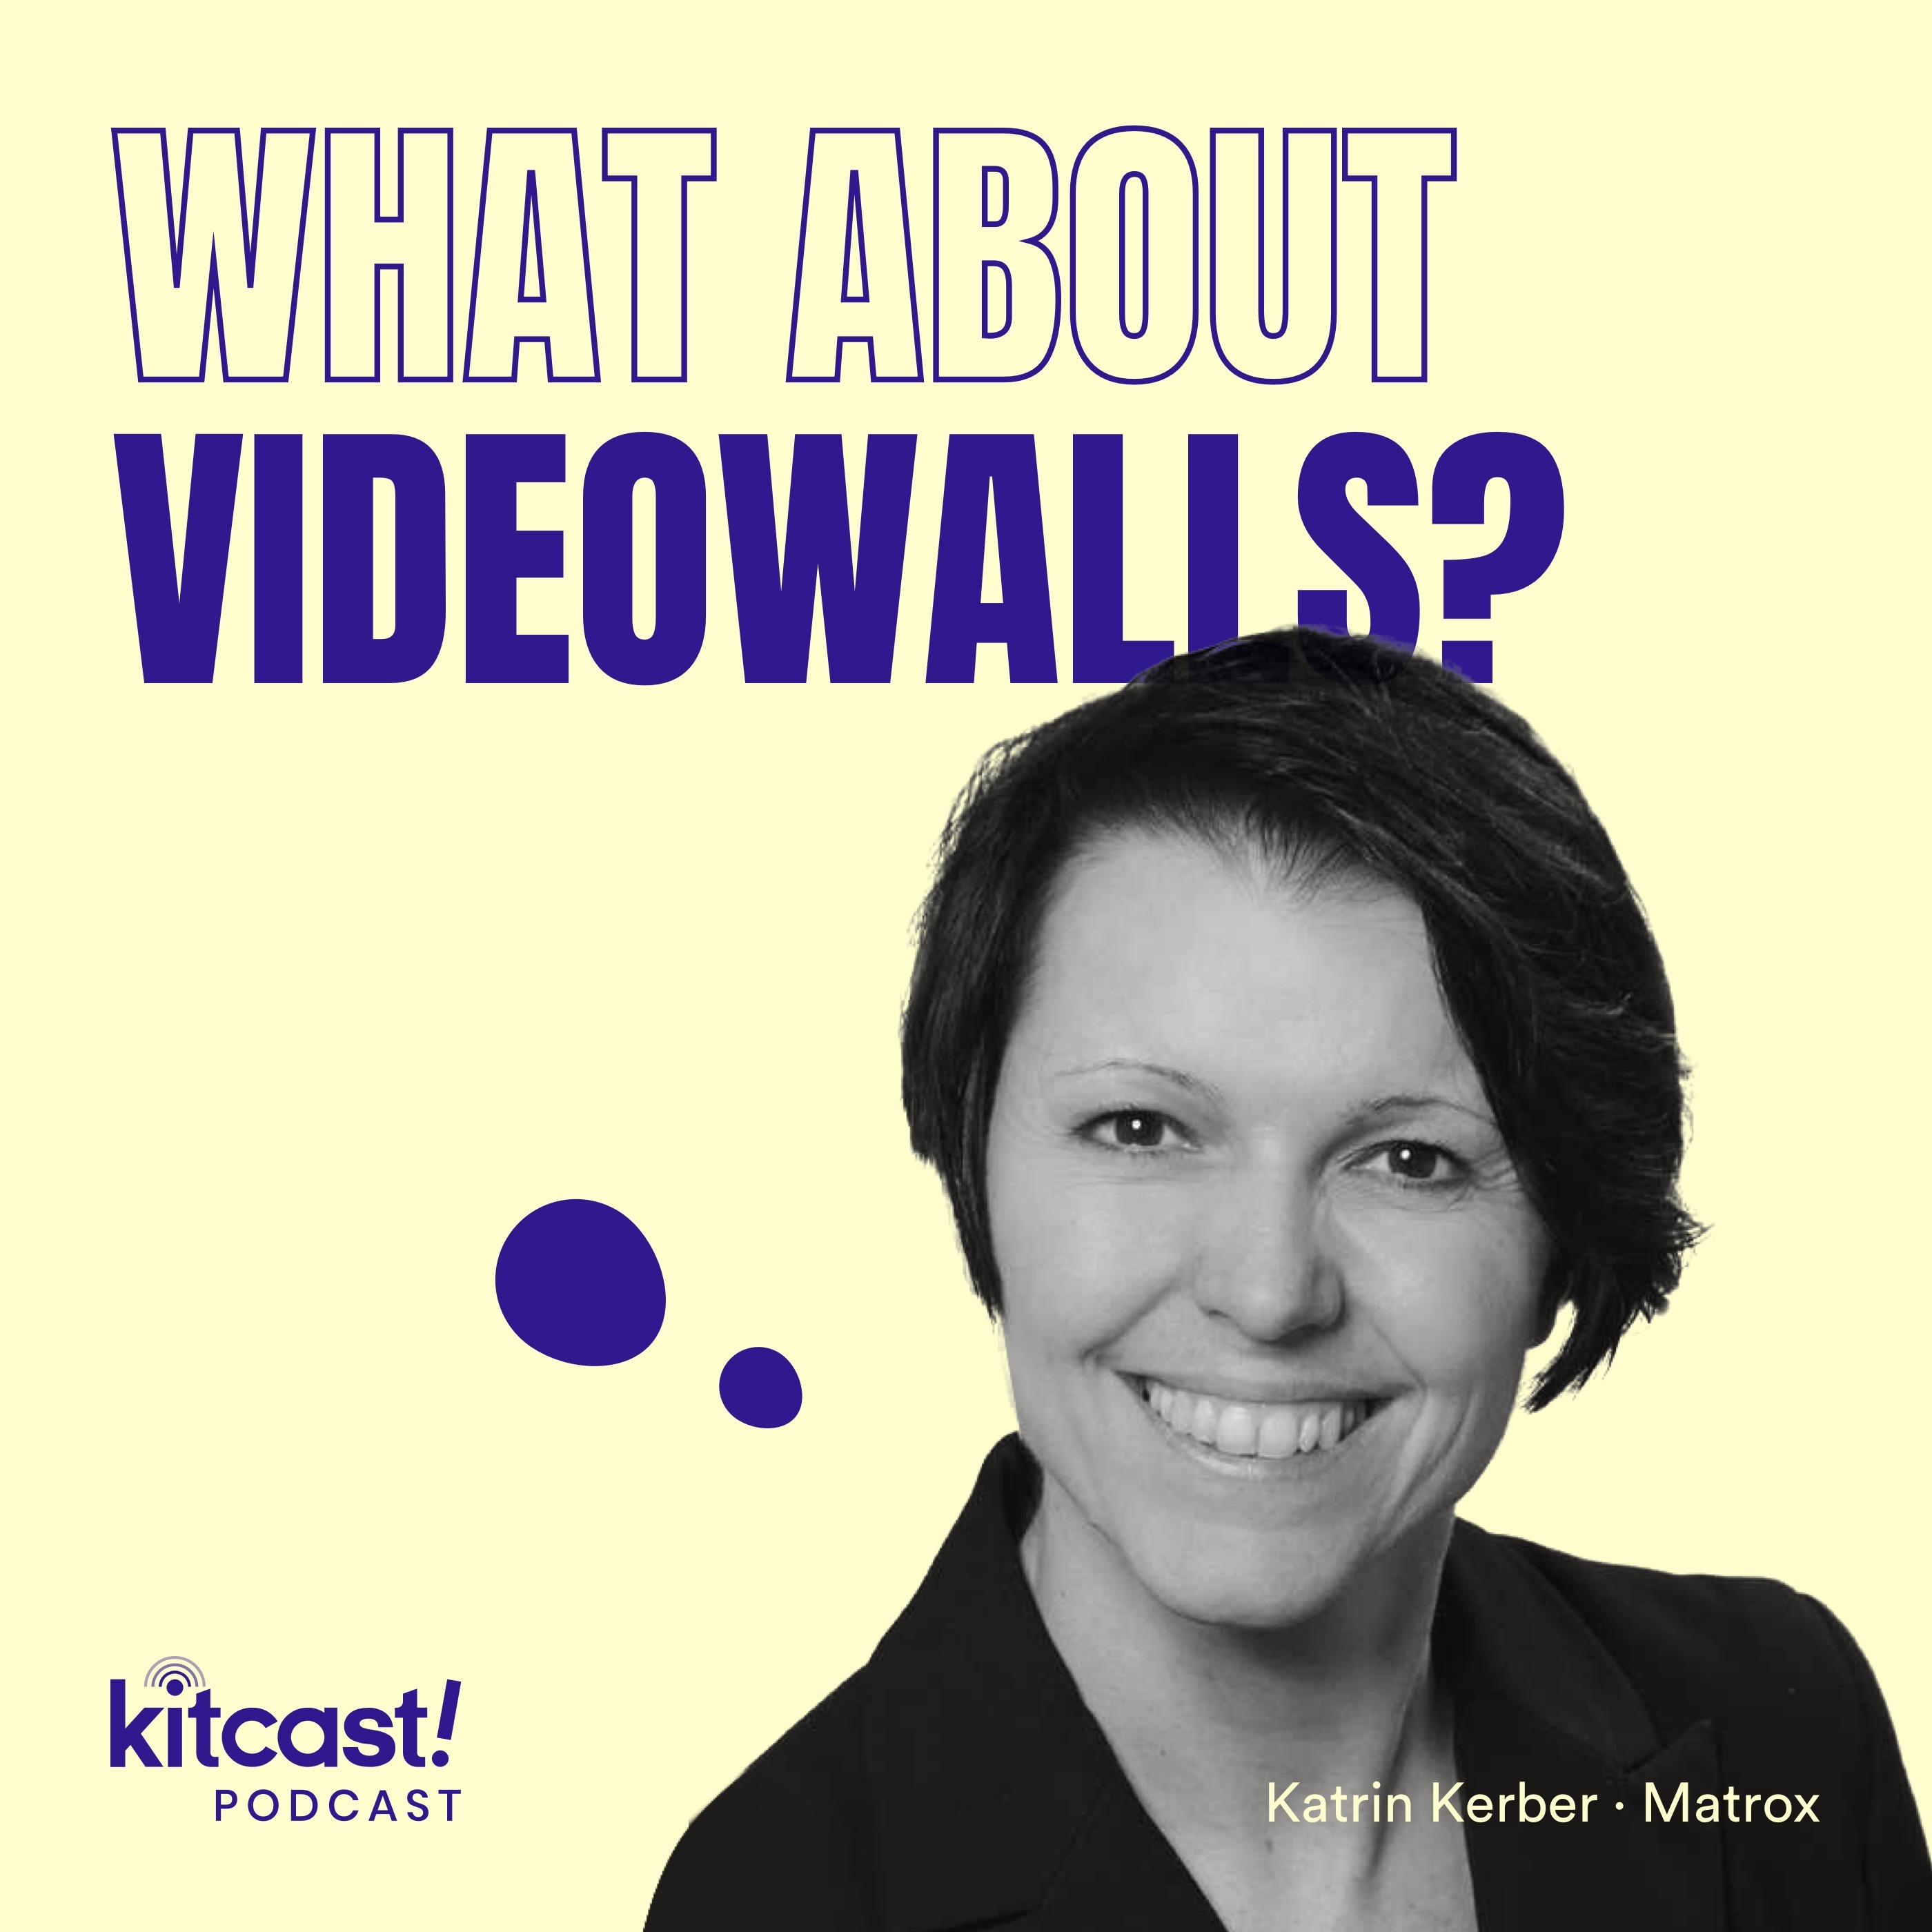 Kitcast Podcast feat Matrox – Episode 8 – What About Videowalls?